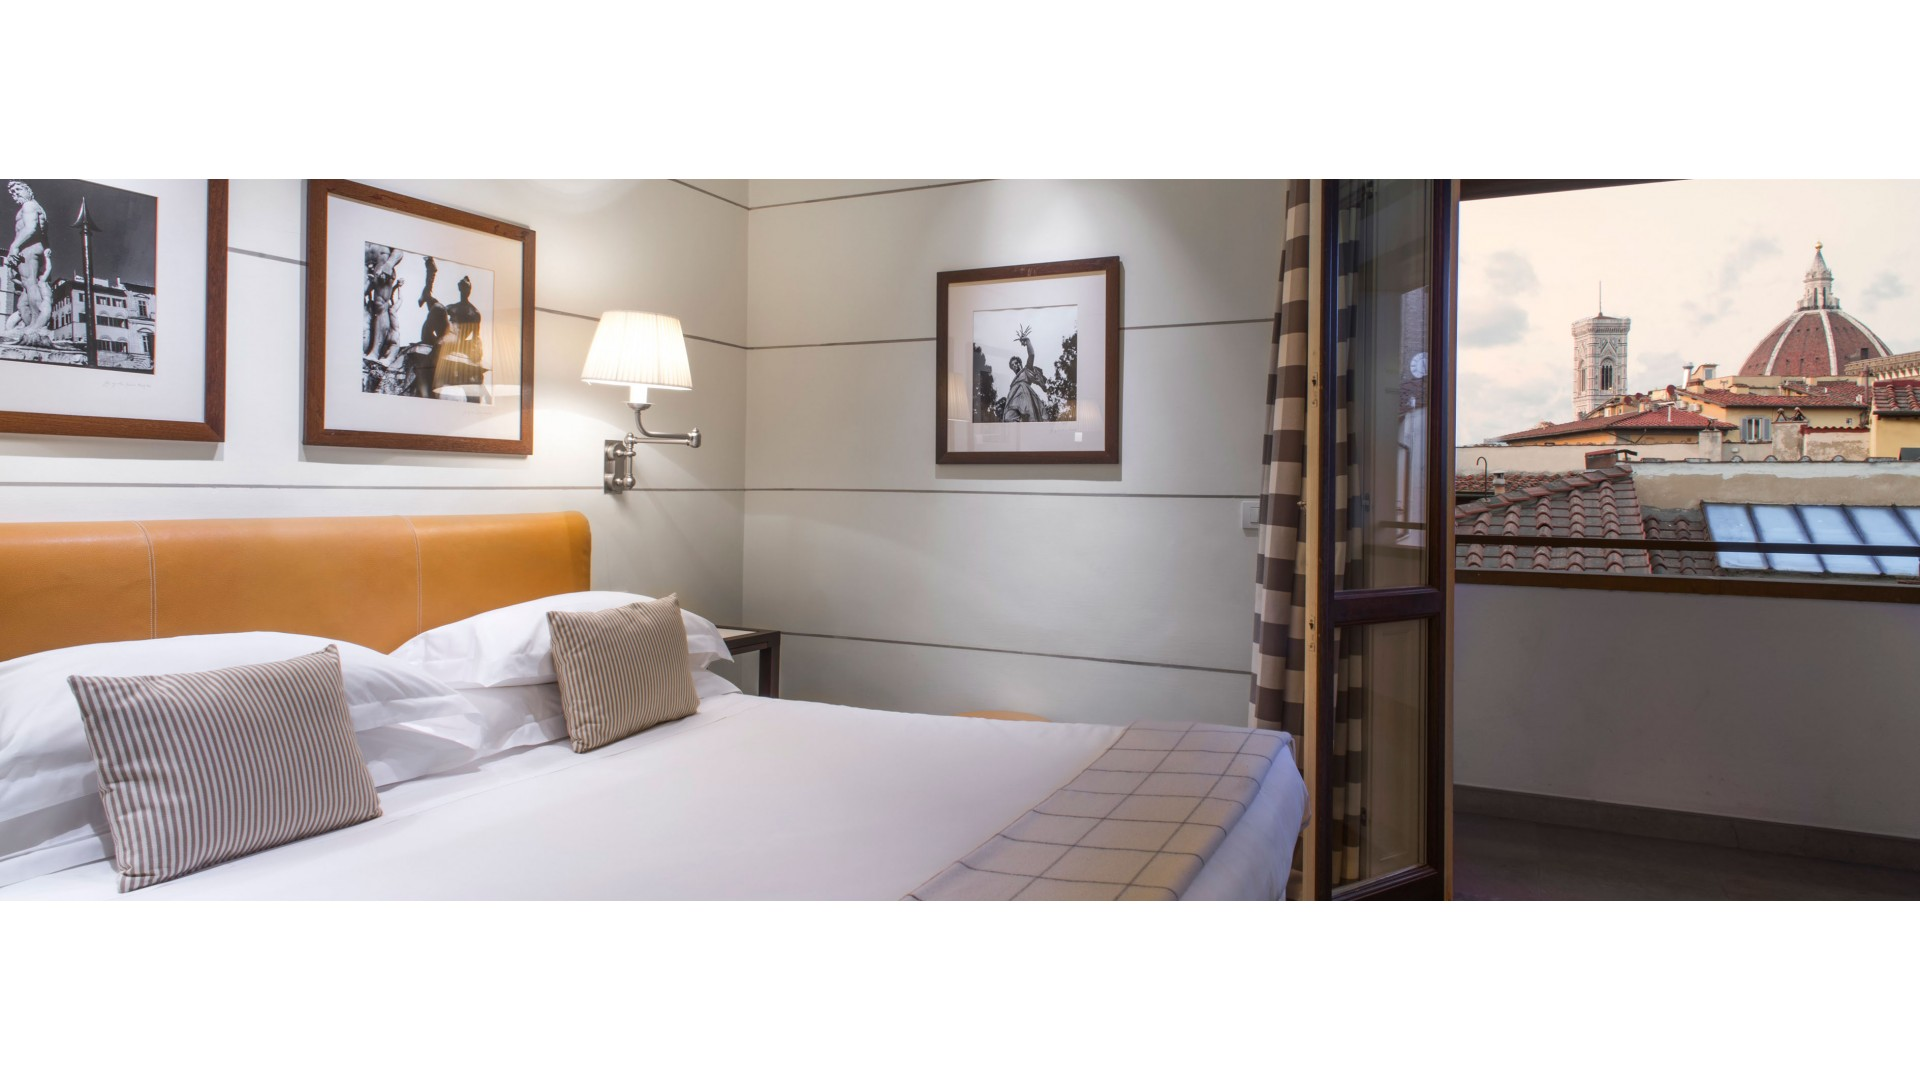 Albergo Firenze Florence Italy Gallery Hotel Art Florence Italy